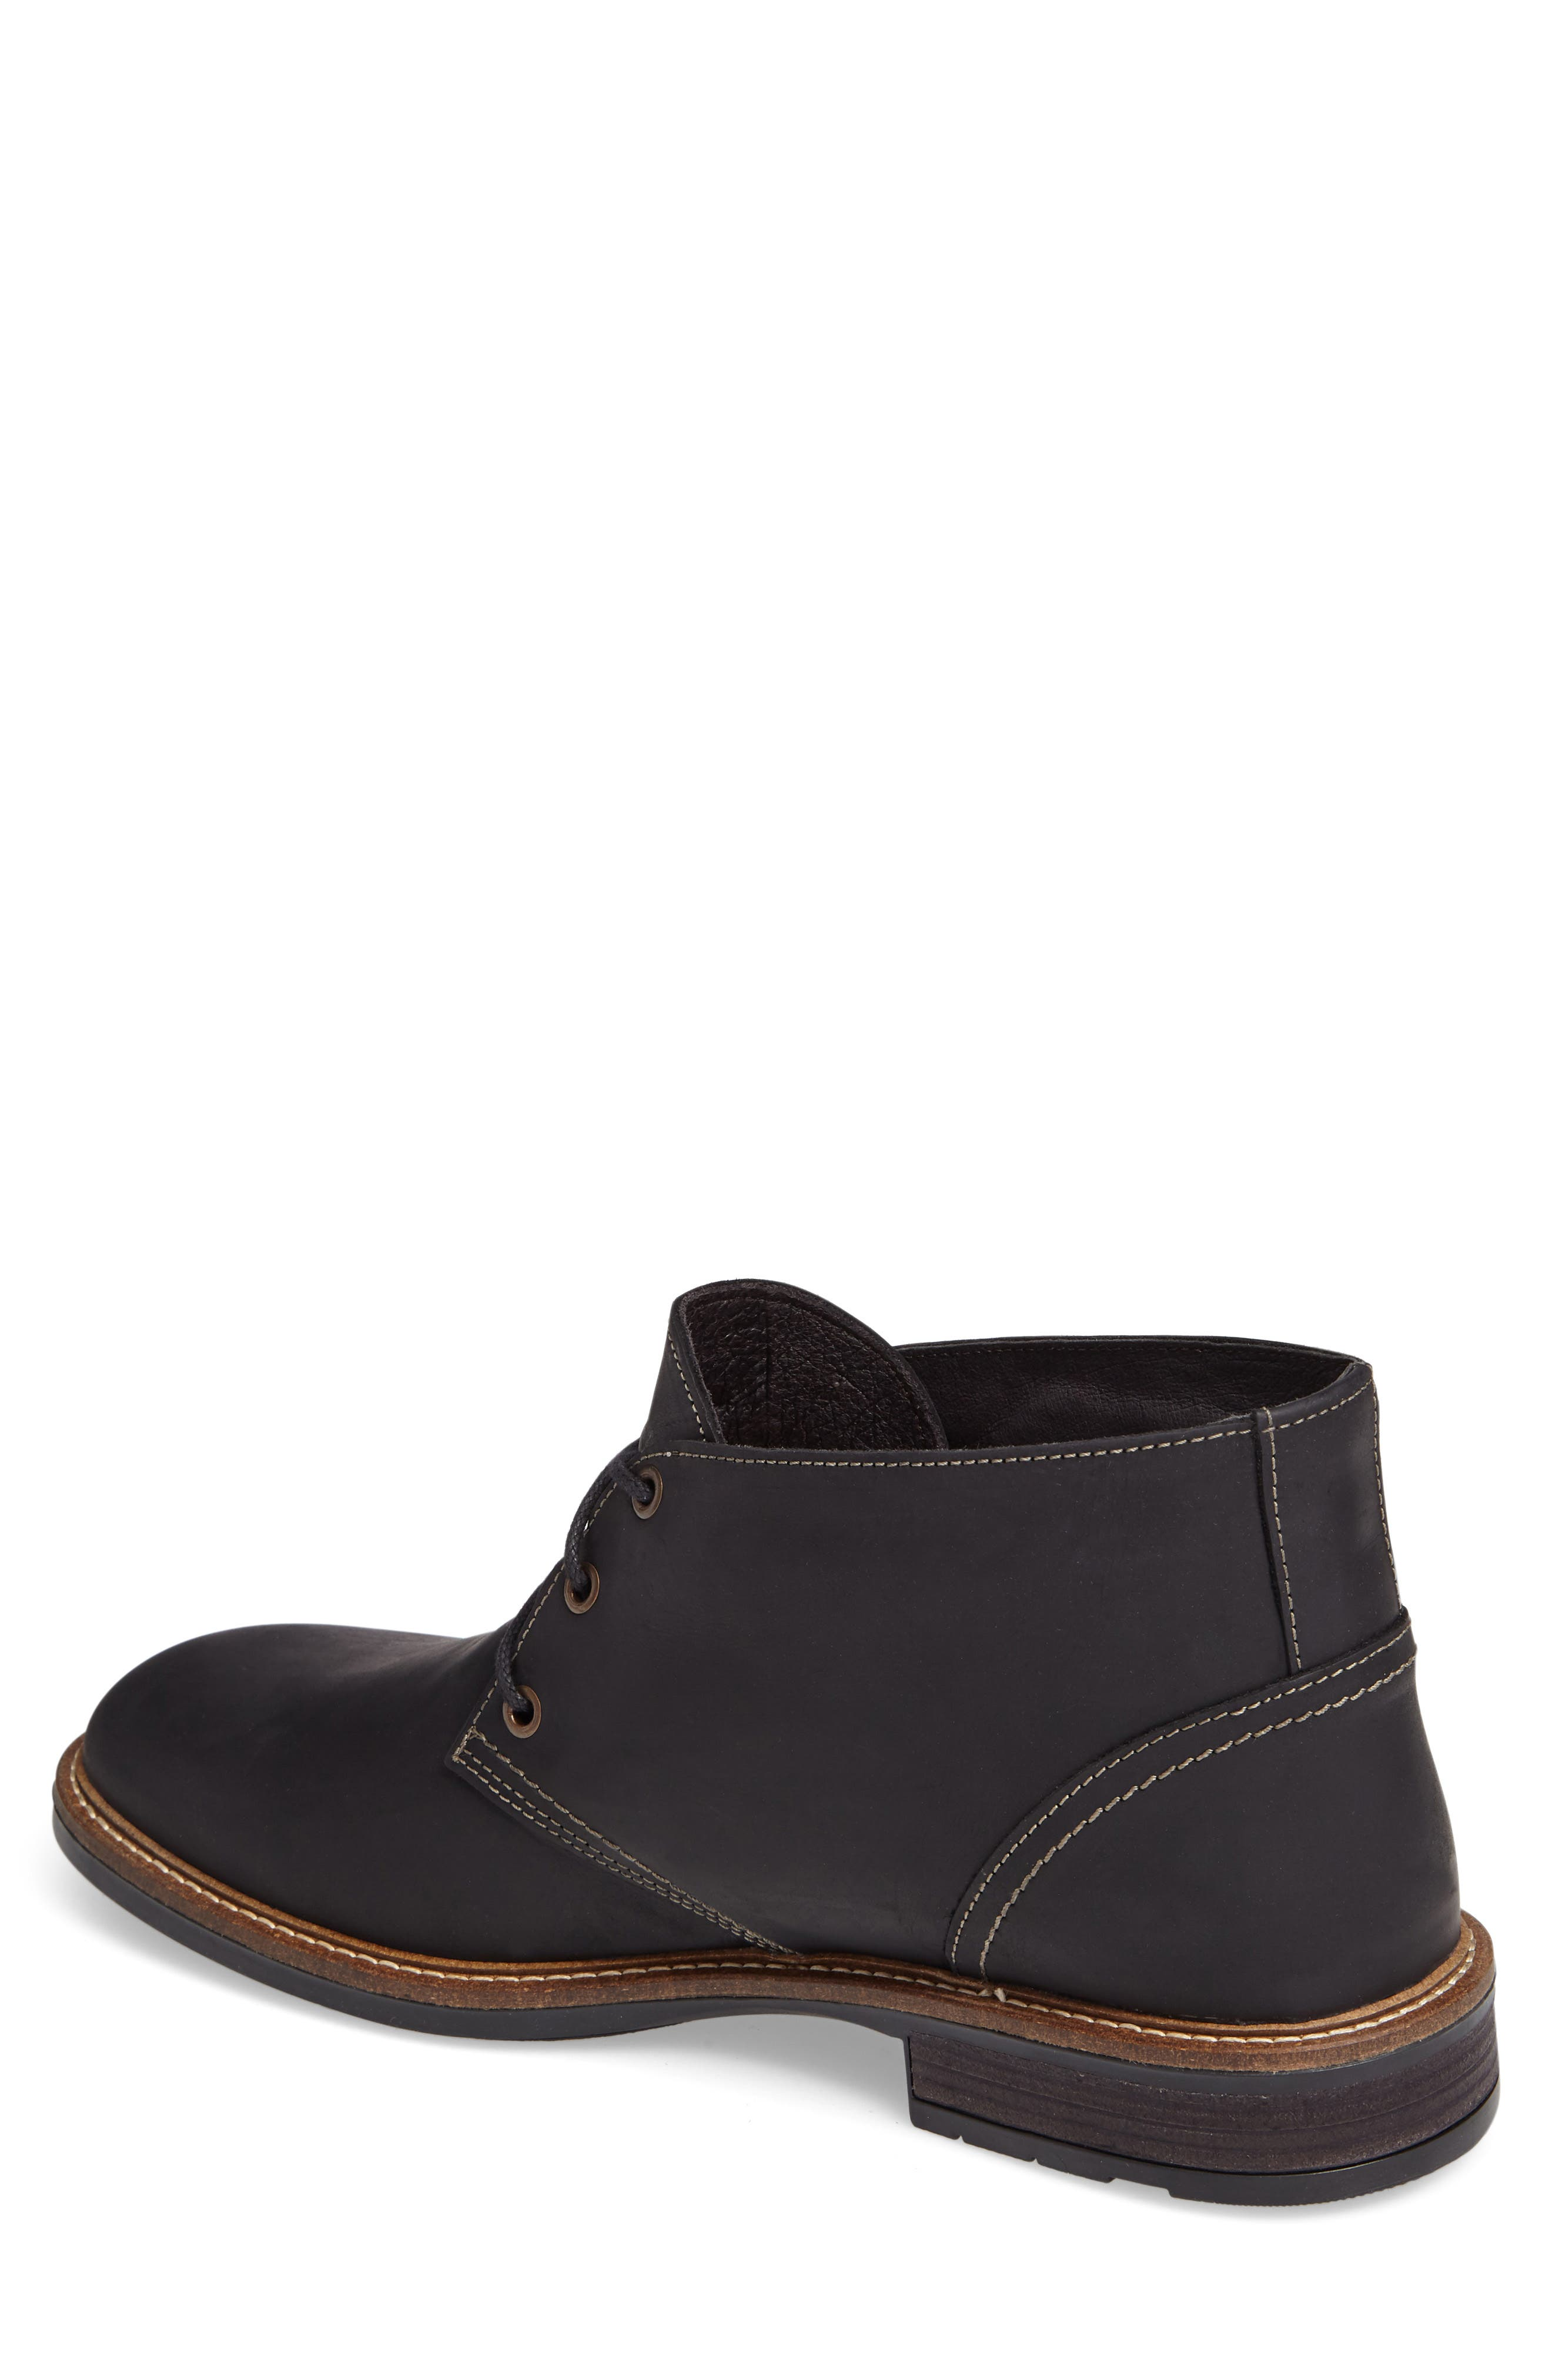 Pilot Chukka Boot,                             Alternate thumbnail 2, color,                             COAL NUBUCK LEATHER